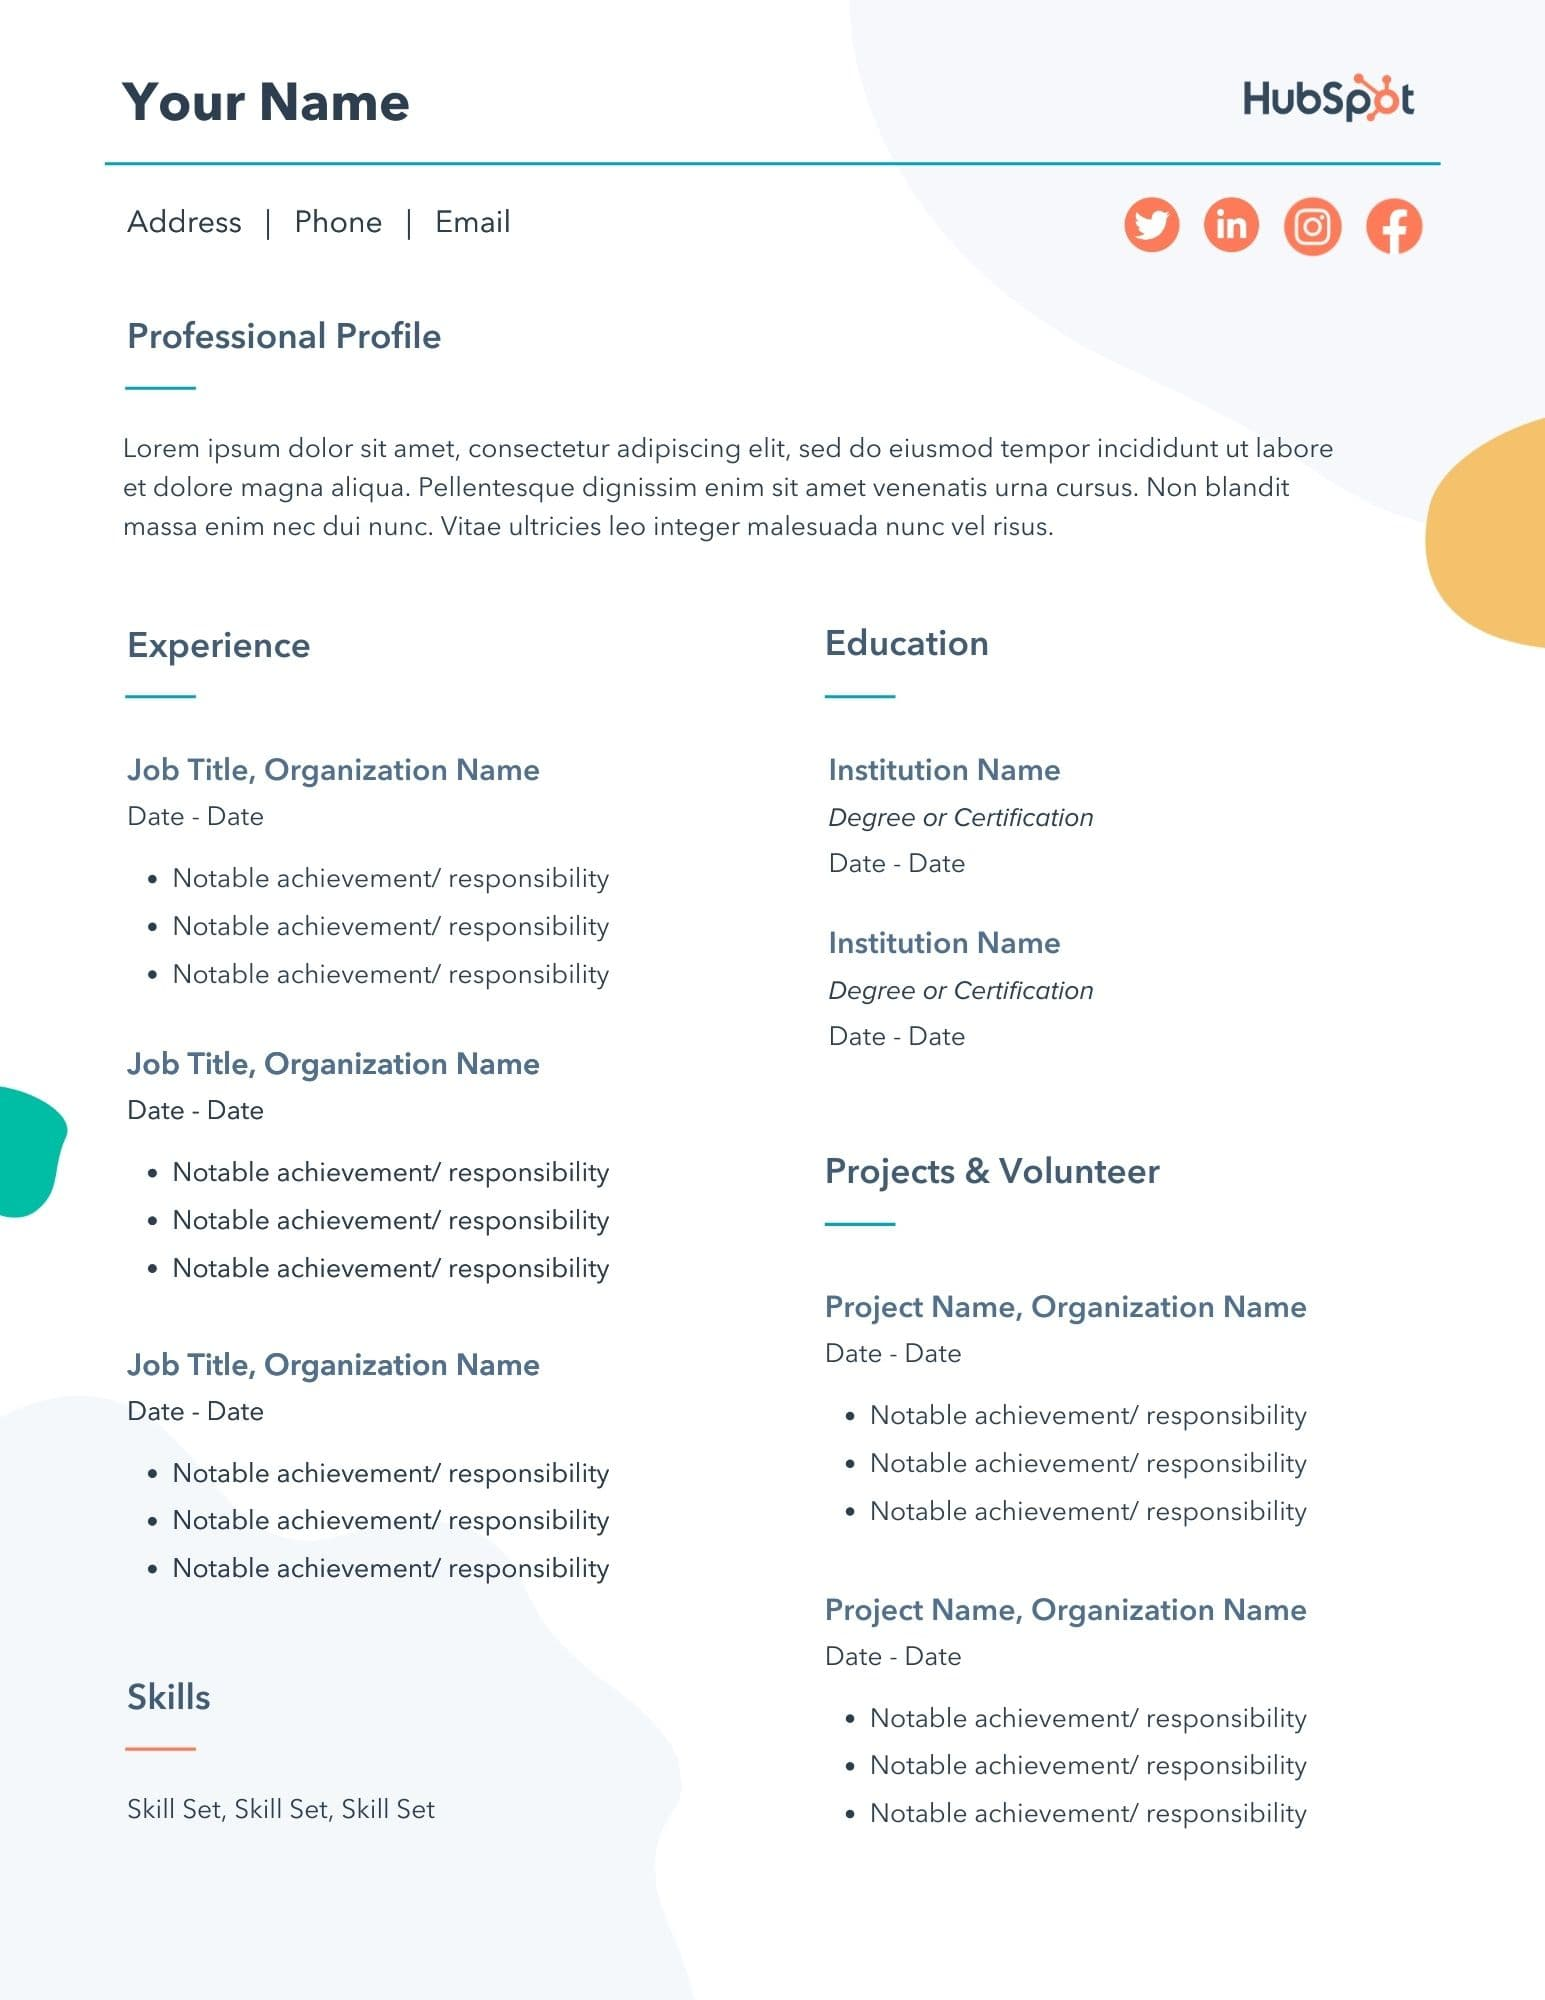 free resume templates for microsoft word to make your own windows template data scientist Resume Windows 10 Resume Download